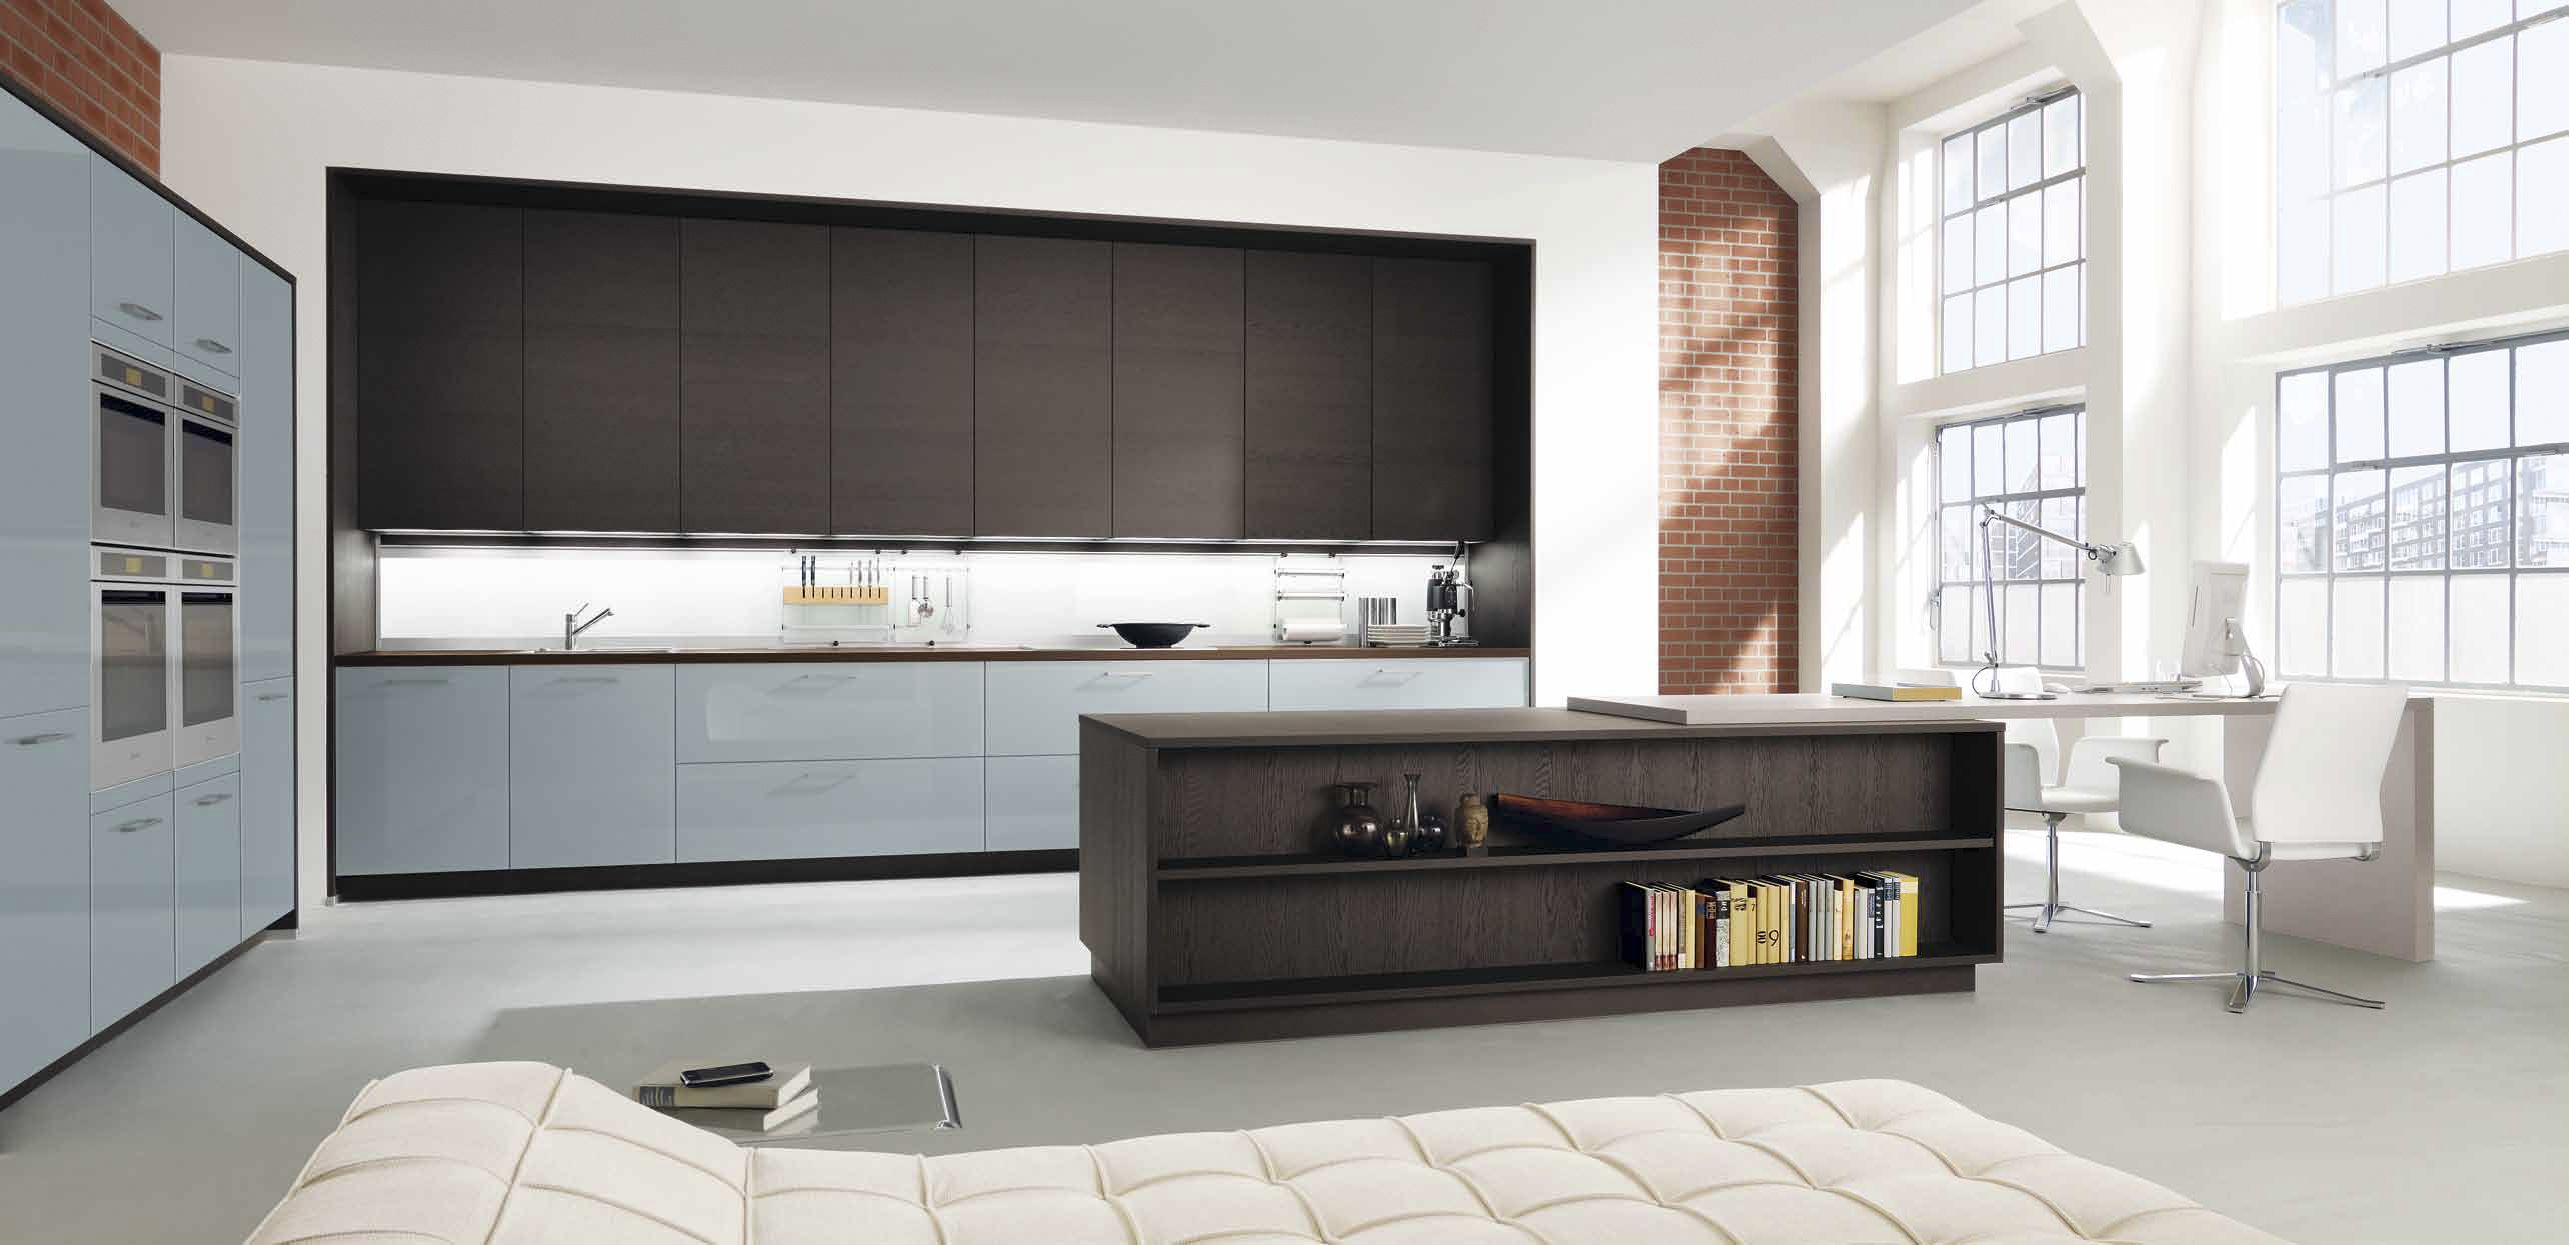 About alno modern kitchens on pinterest modern kitchen cabinets - They Explored A Maritime Inspired Design Which Cause Excitement Worldwide The Company Won Kitchens By Alno Home Inspiration A Modern Kitchen